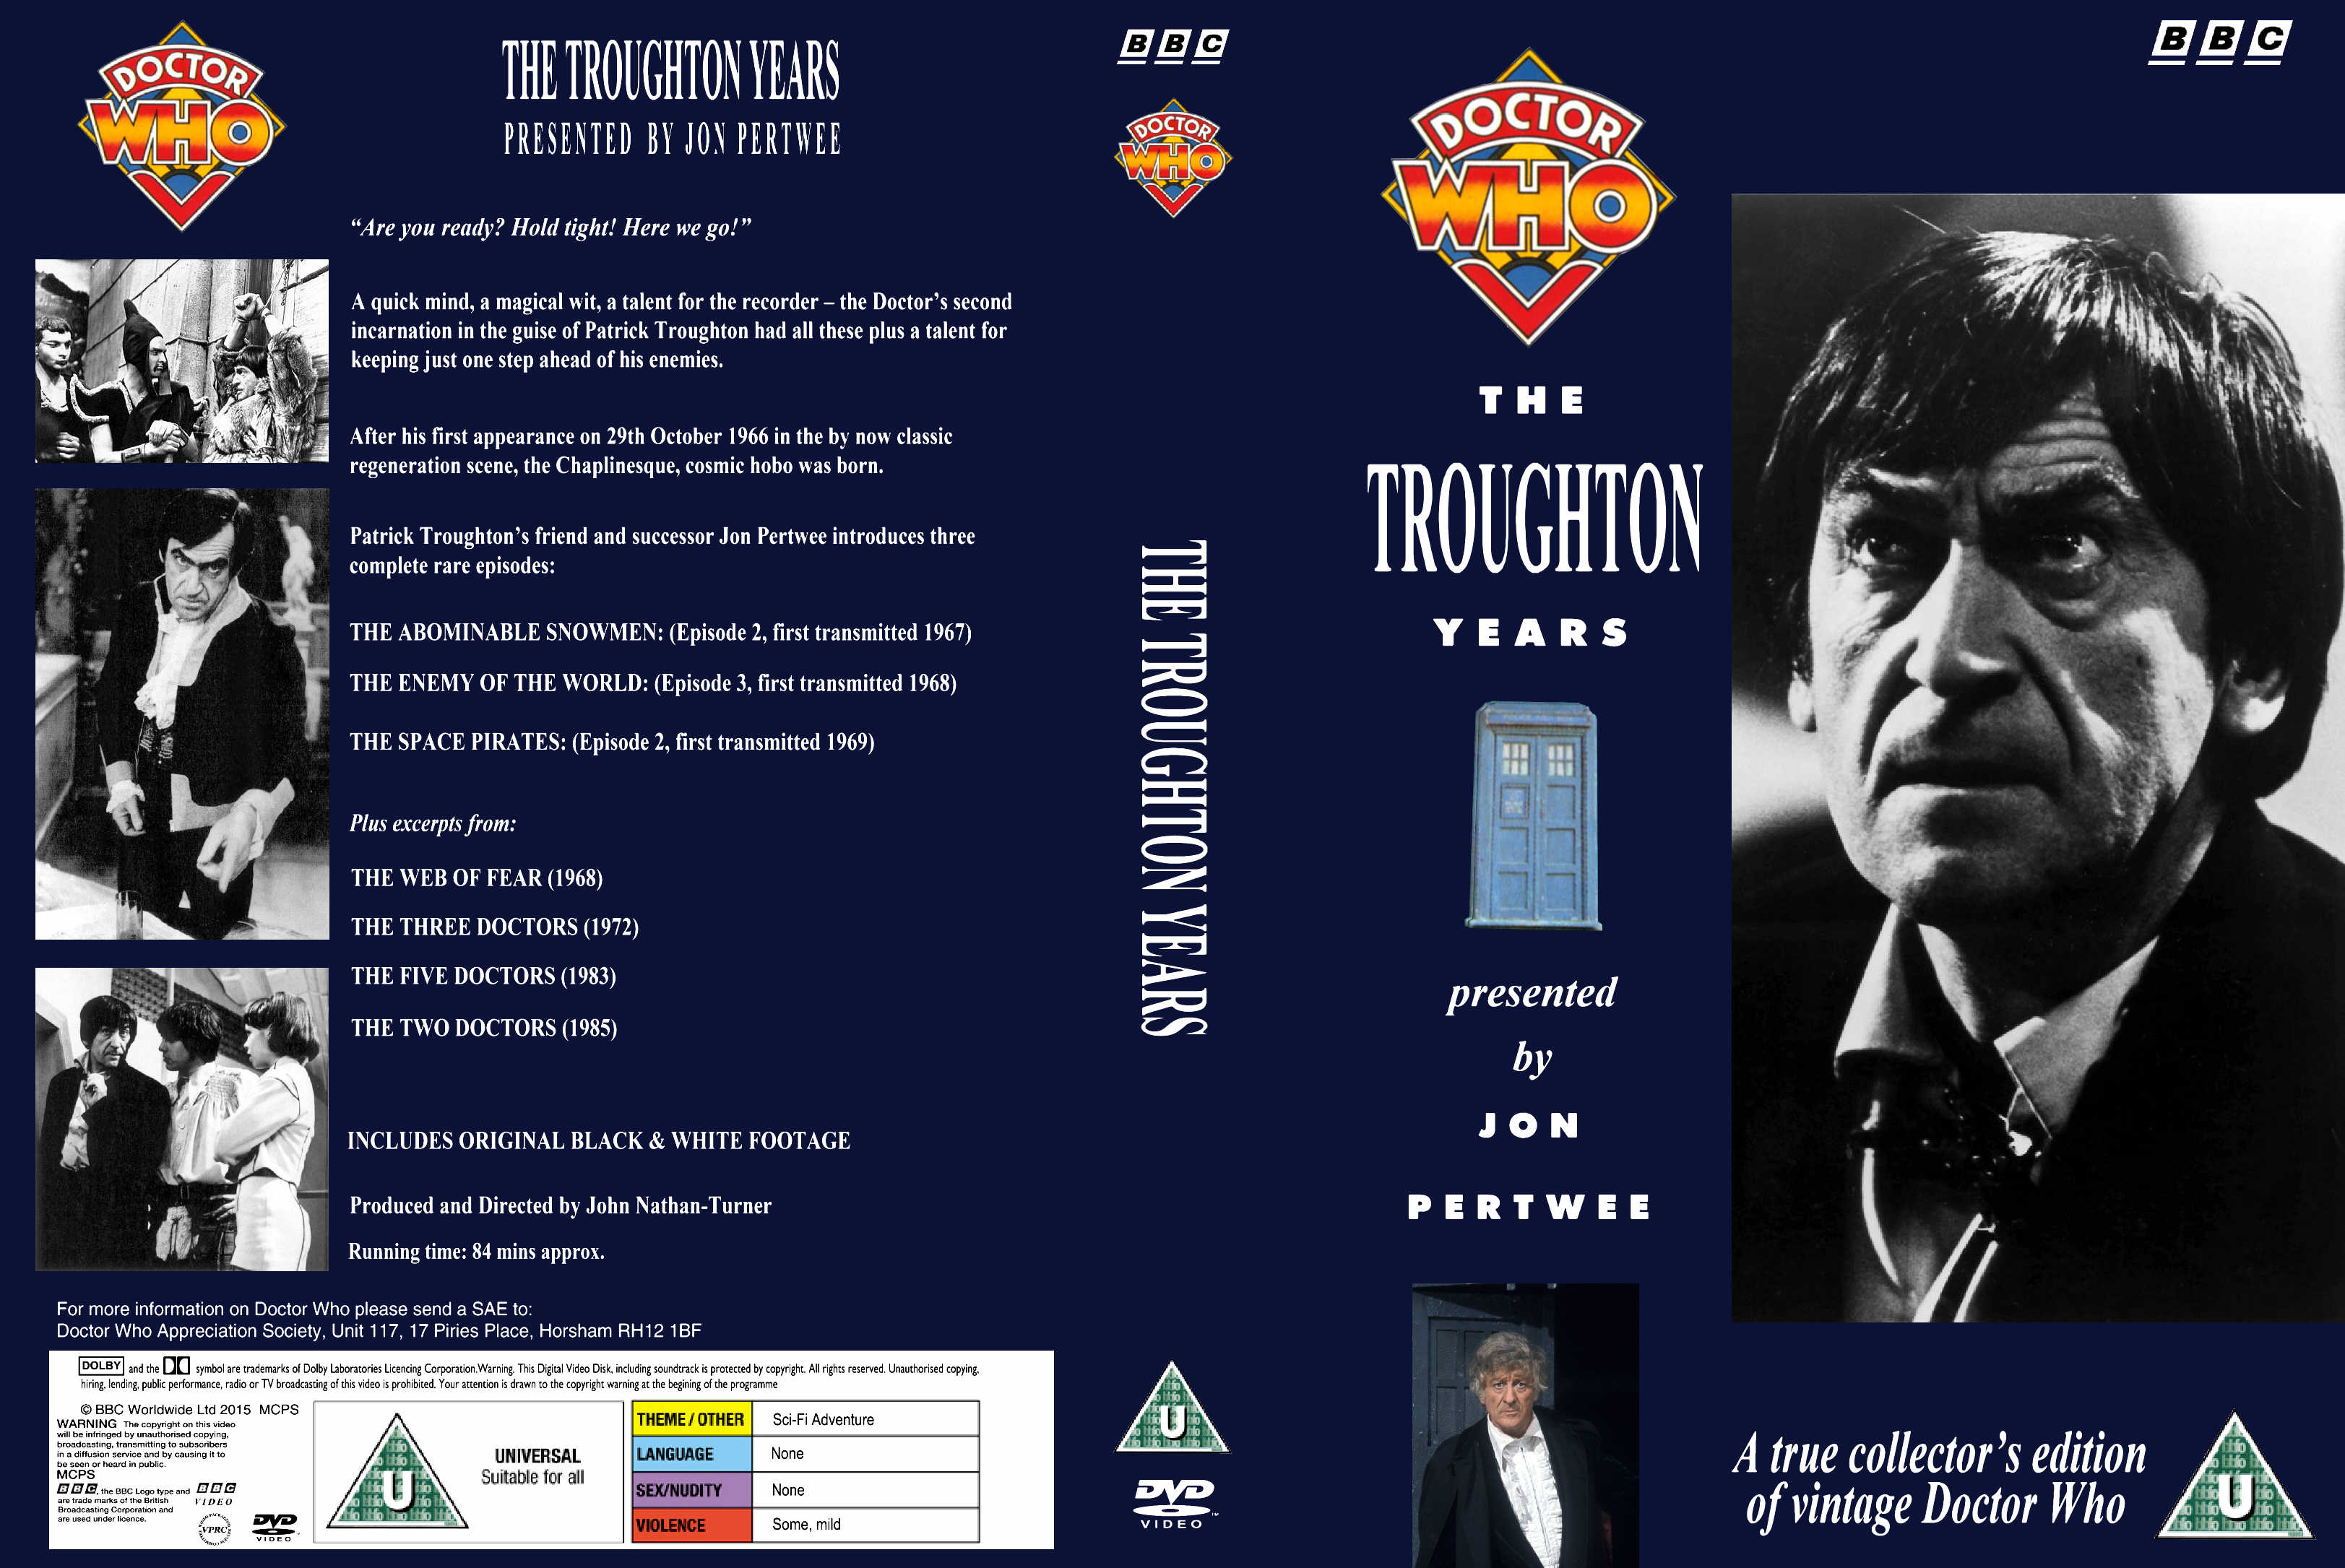 The Troughton Years VHS